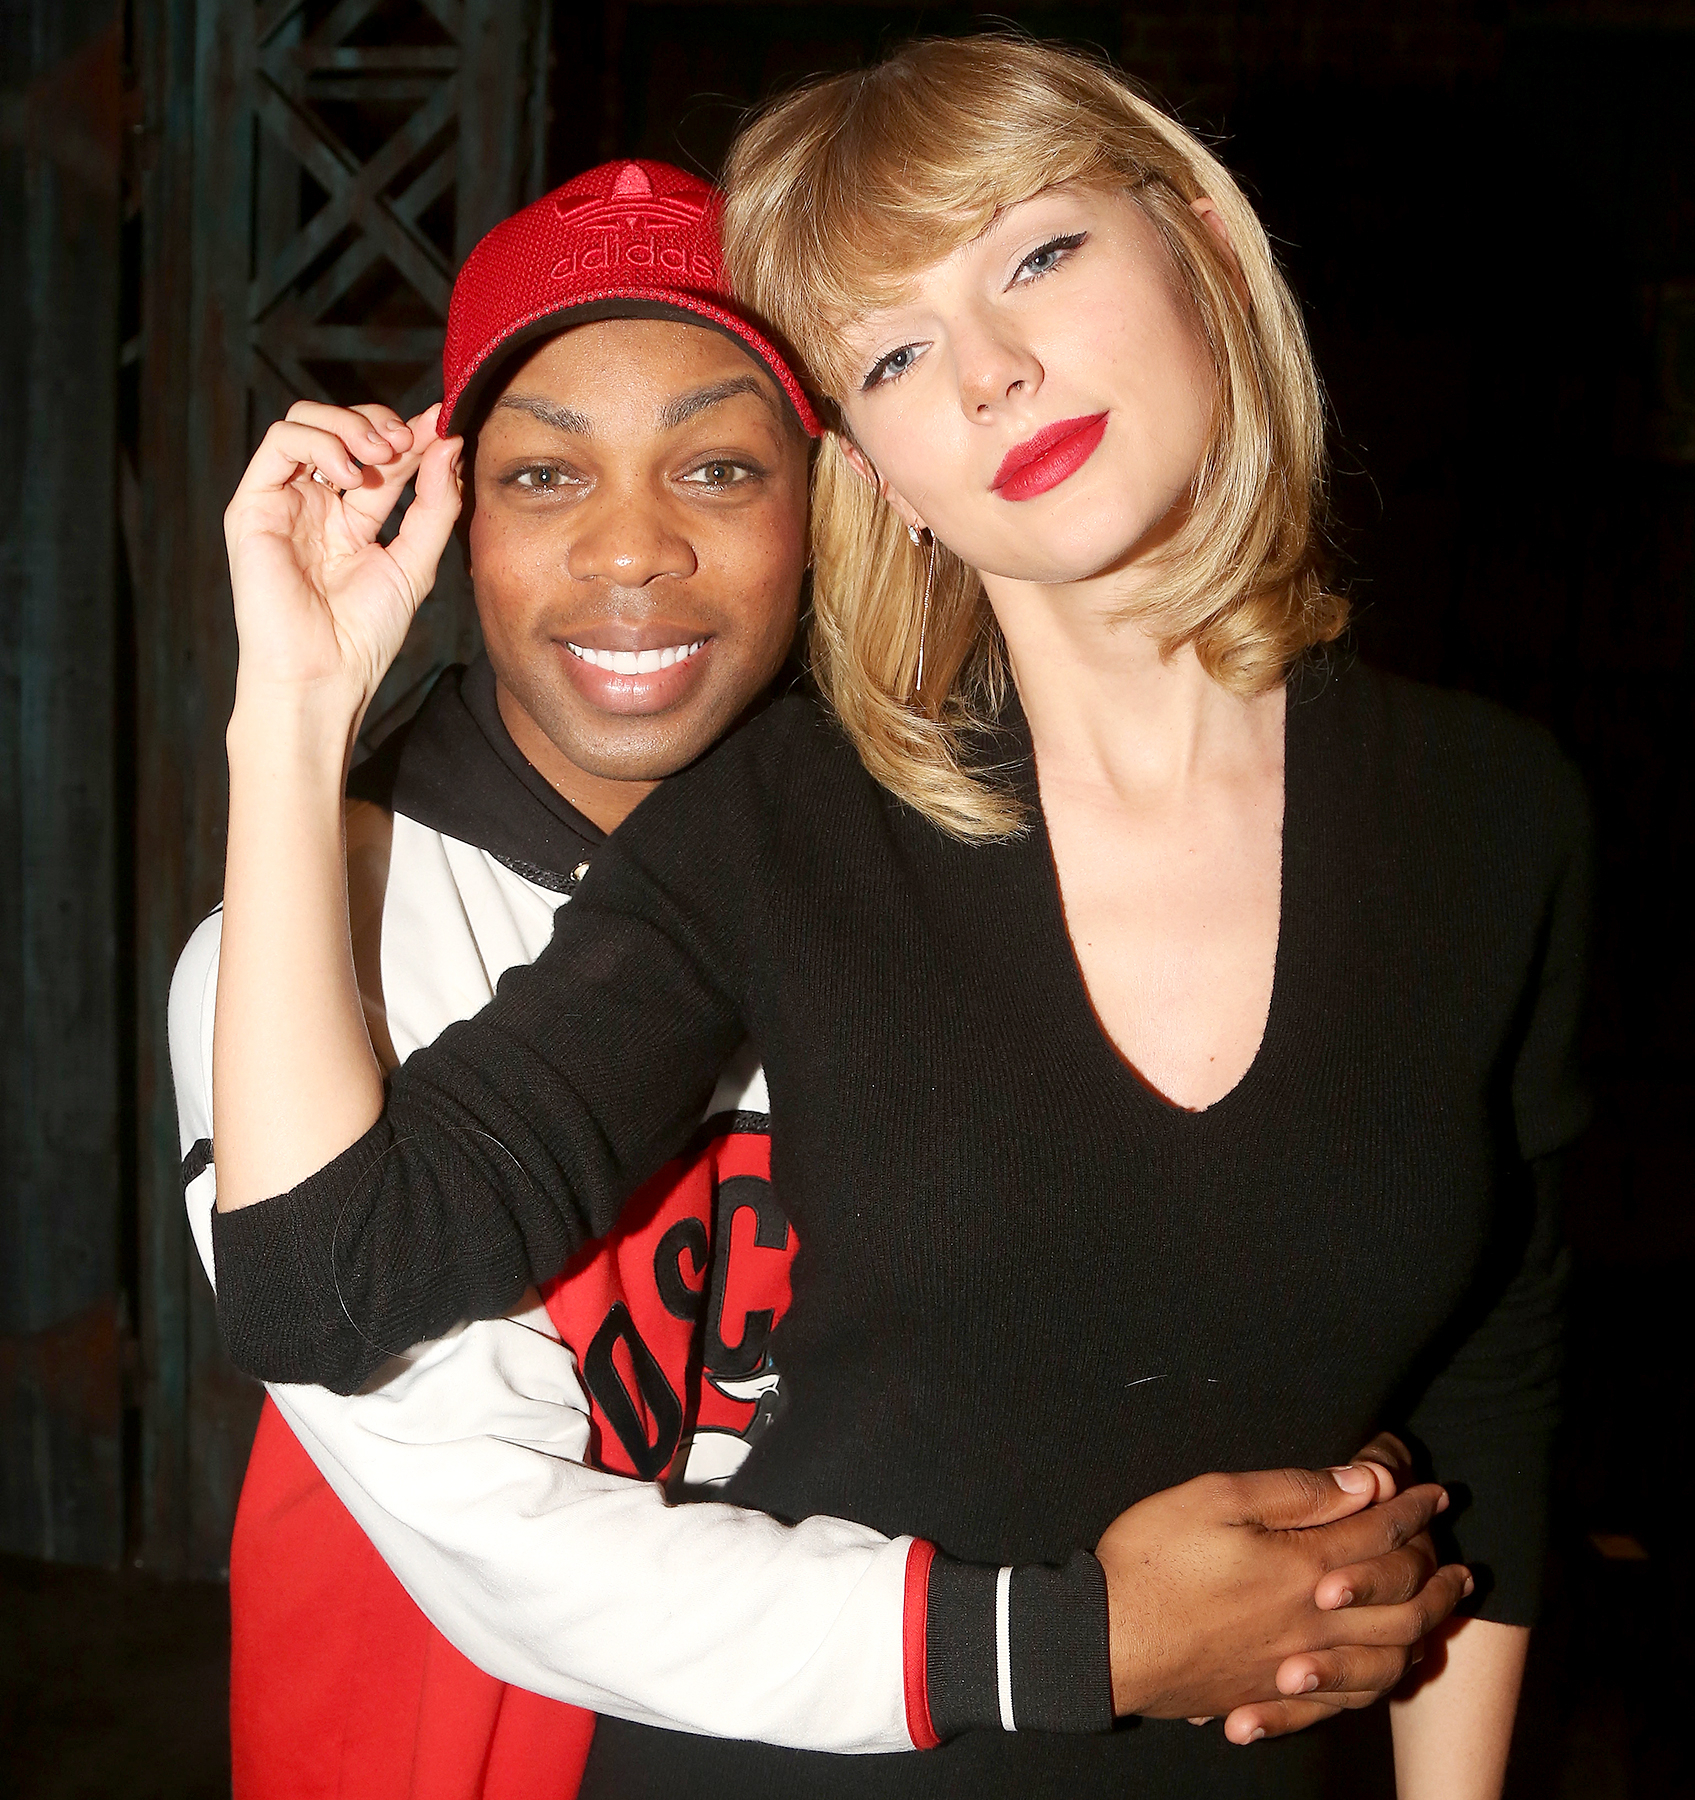 Todrick Hall and Taylor Swift pose backstage at 'Kinky Boots' on Broadway at The Al Hirschfeld Theater in New York City on November 23, 2016.